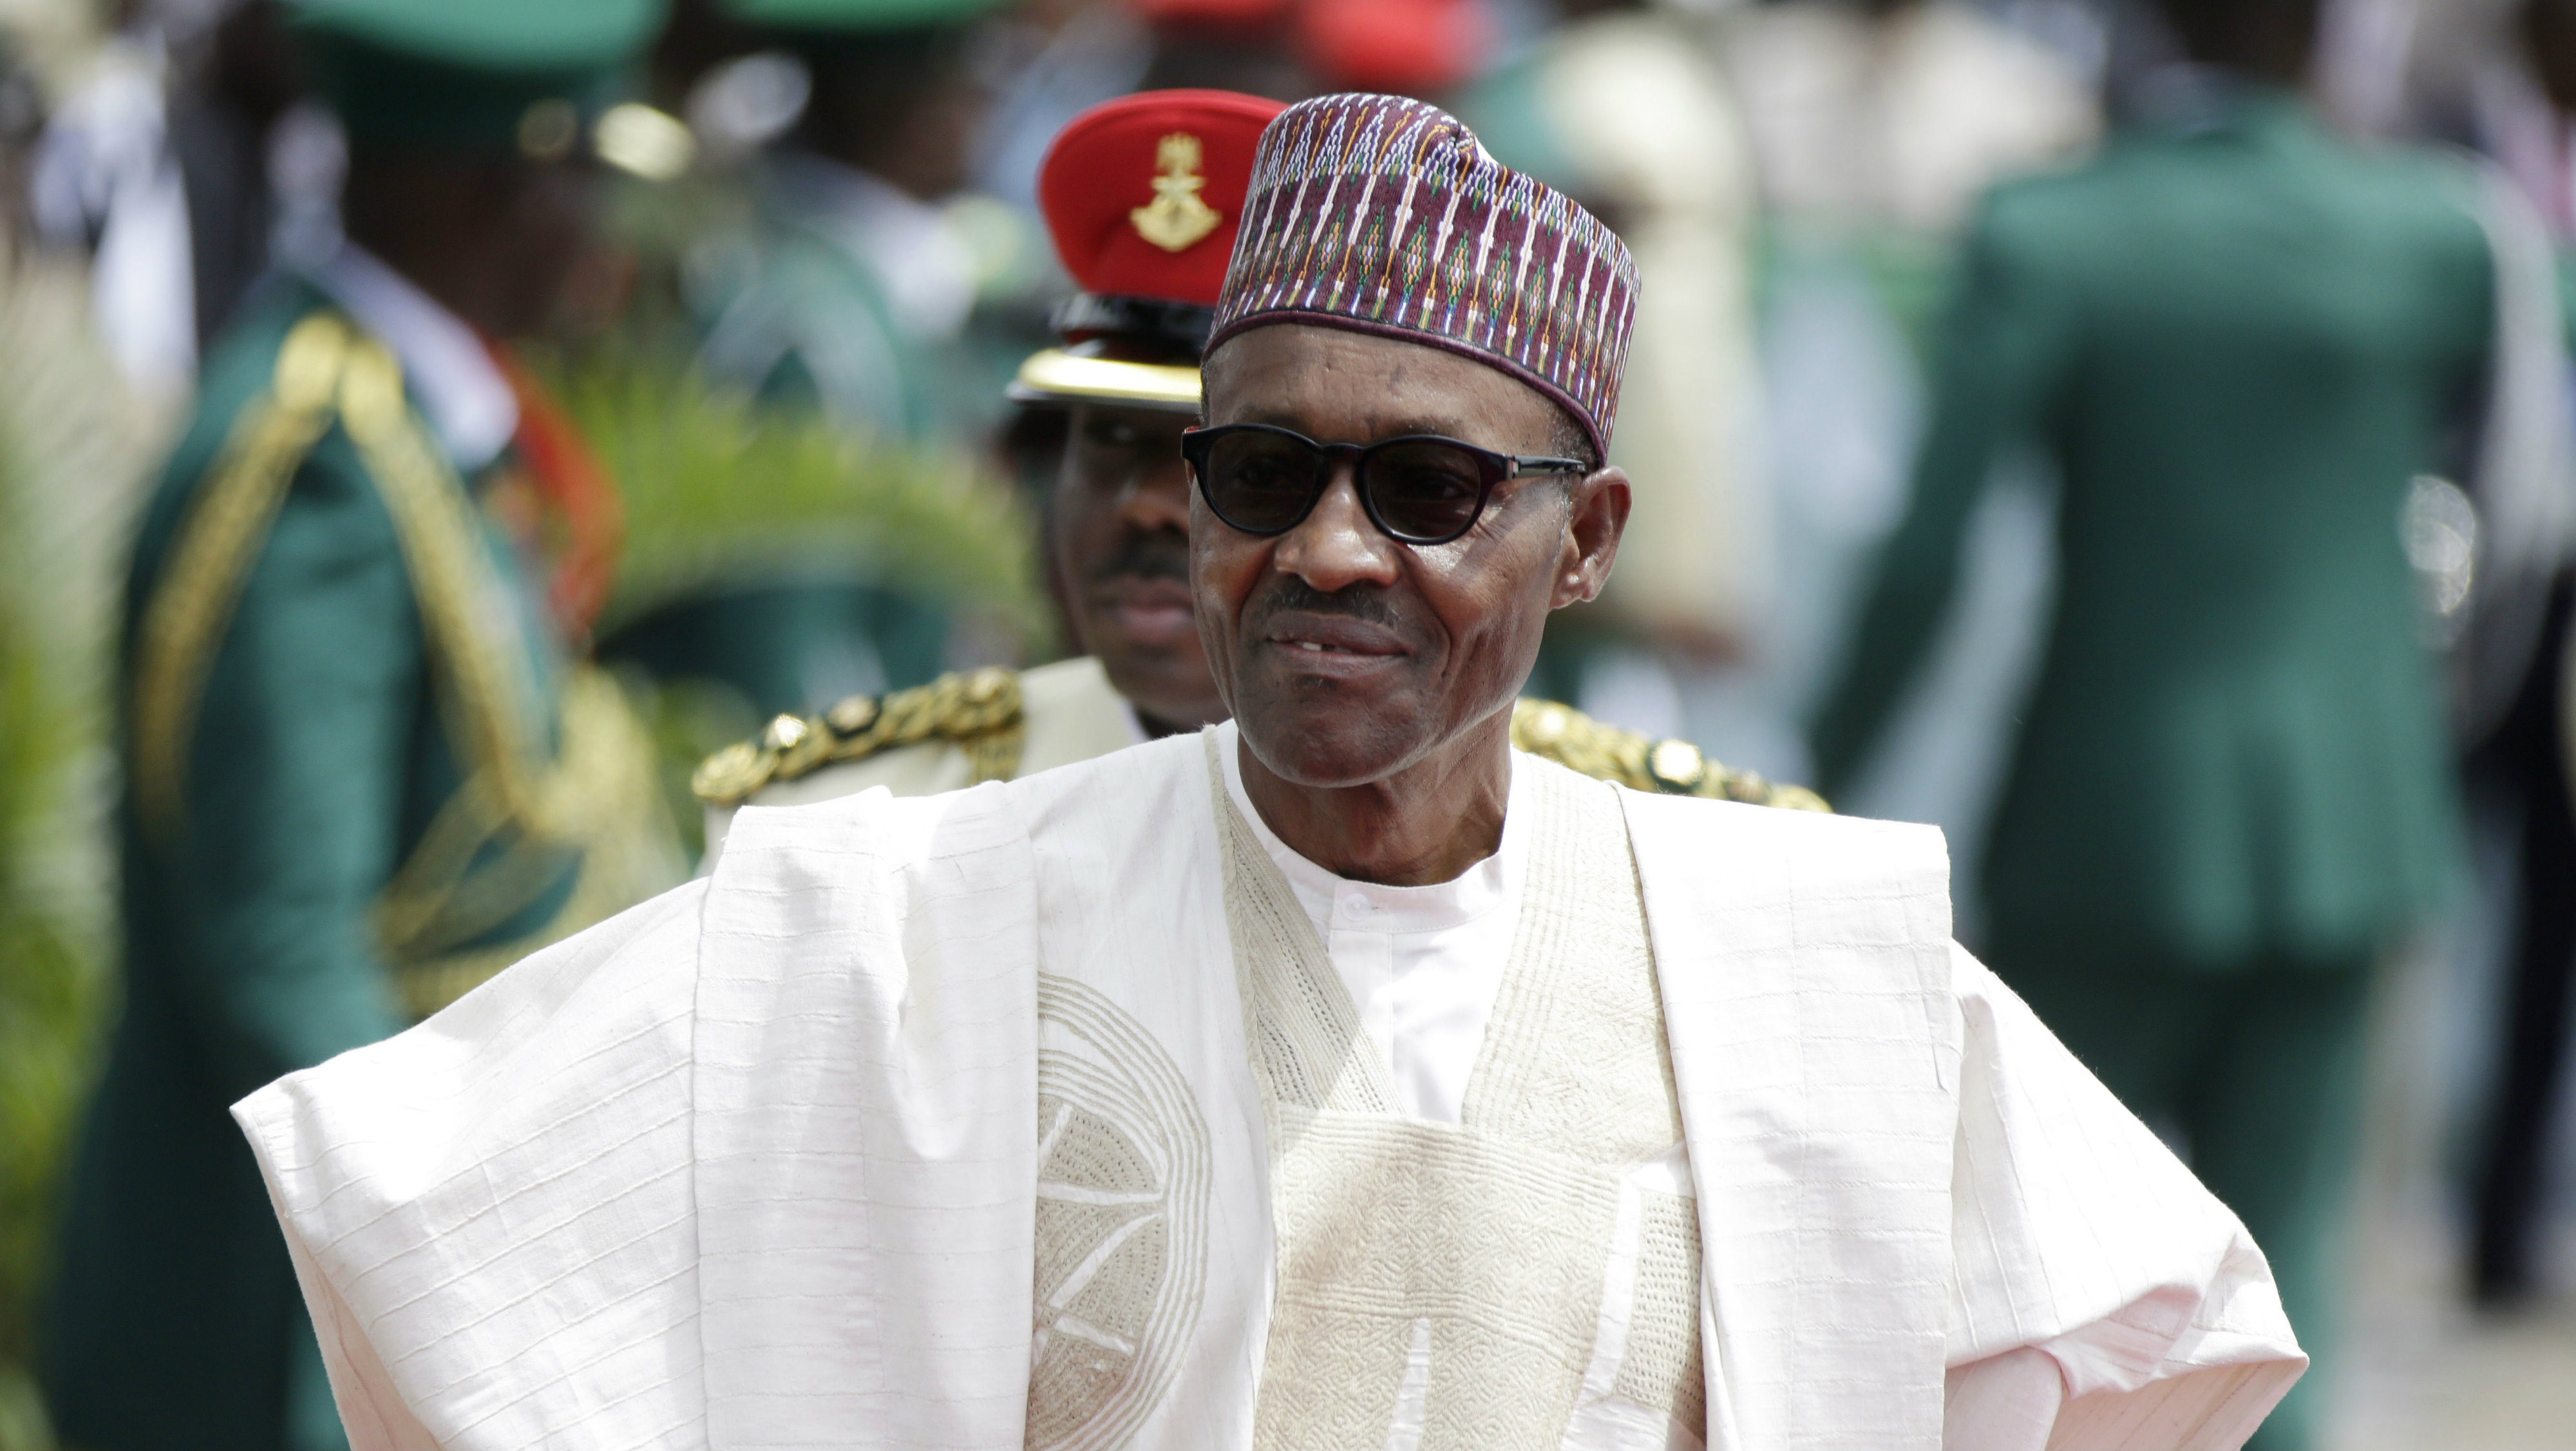 In this file photo taken Friday, May 29, 2015, Nigerian President elect, Muhammadu Buhari, arrives for his Inauguration at the eagle square in Abuja, Nigeria. The Boko Haram extremist group has finally been crushed — driven from its last forest enclave with fighters on the run and no place to hide, Nigeria's president declared Saturday, Dec. 24, 2016.